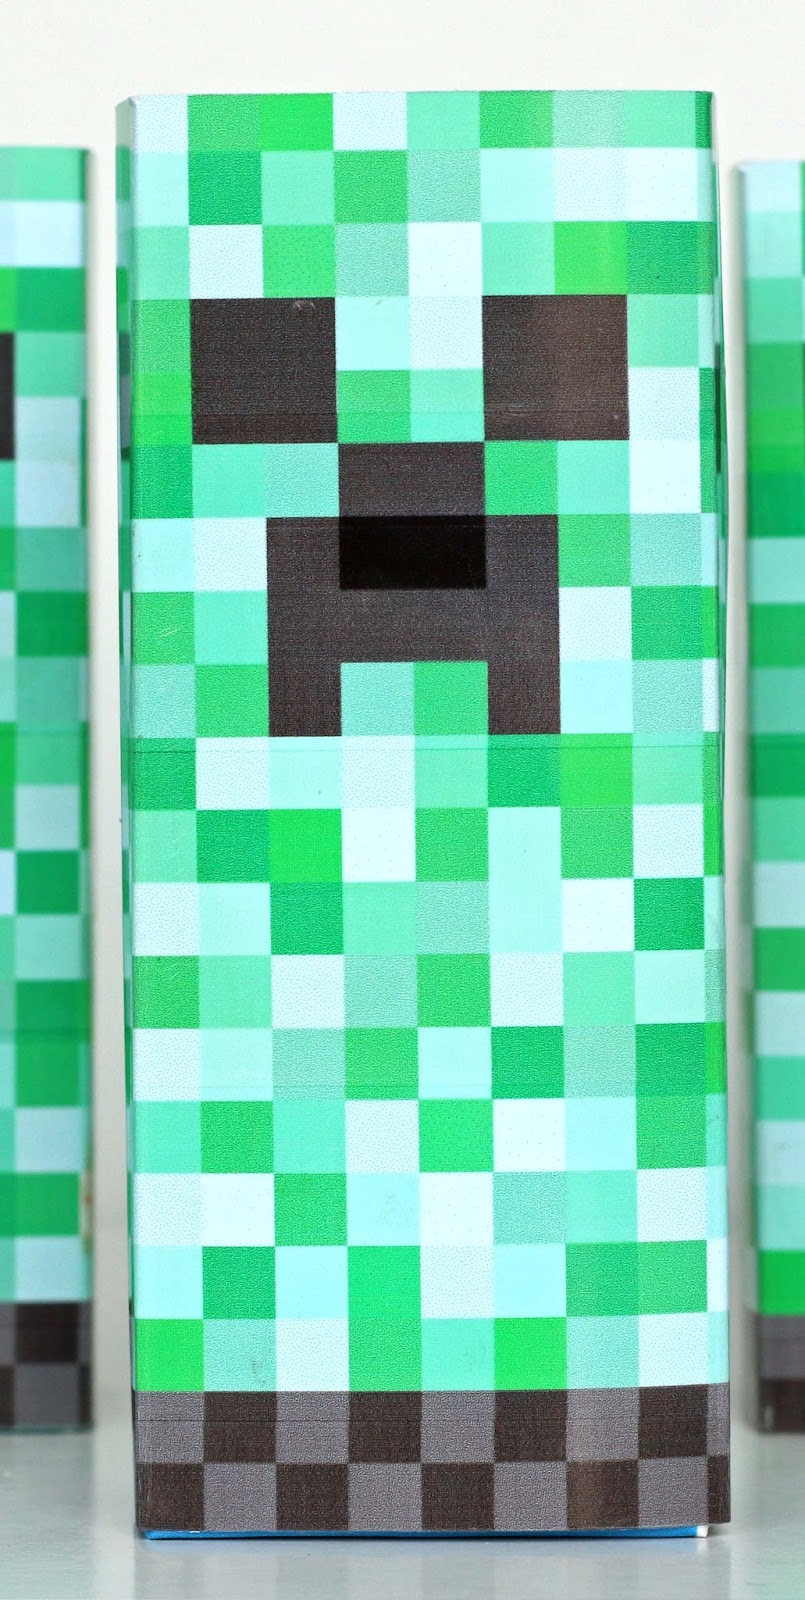 Impertinent Minecraft Creeper Face Printable | Randall Website